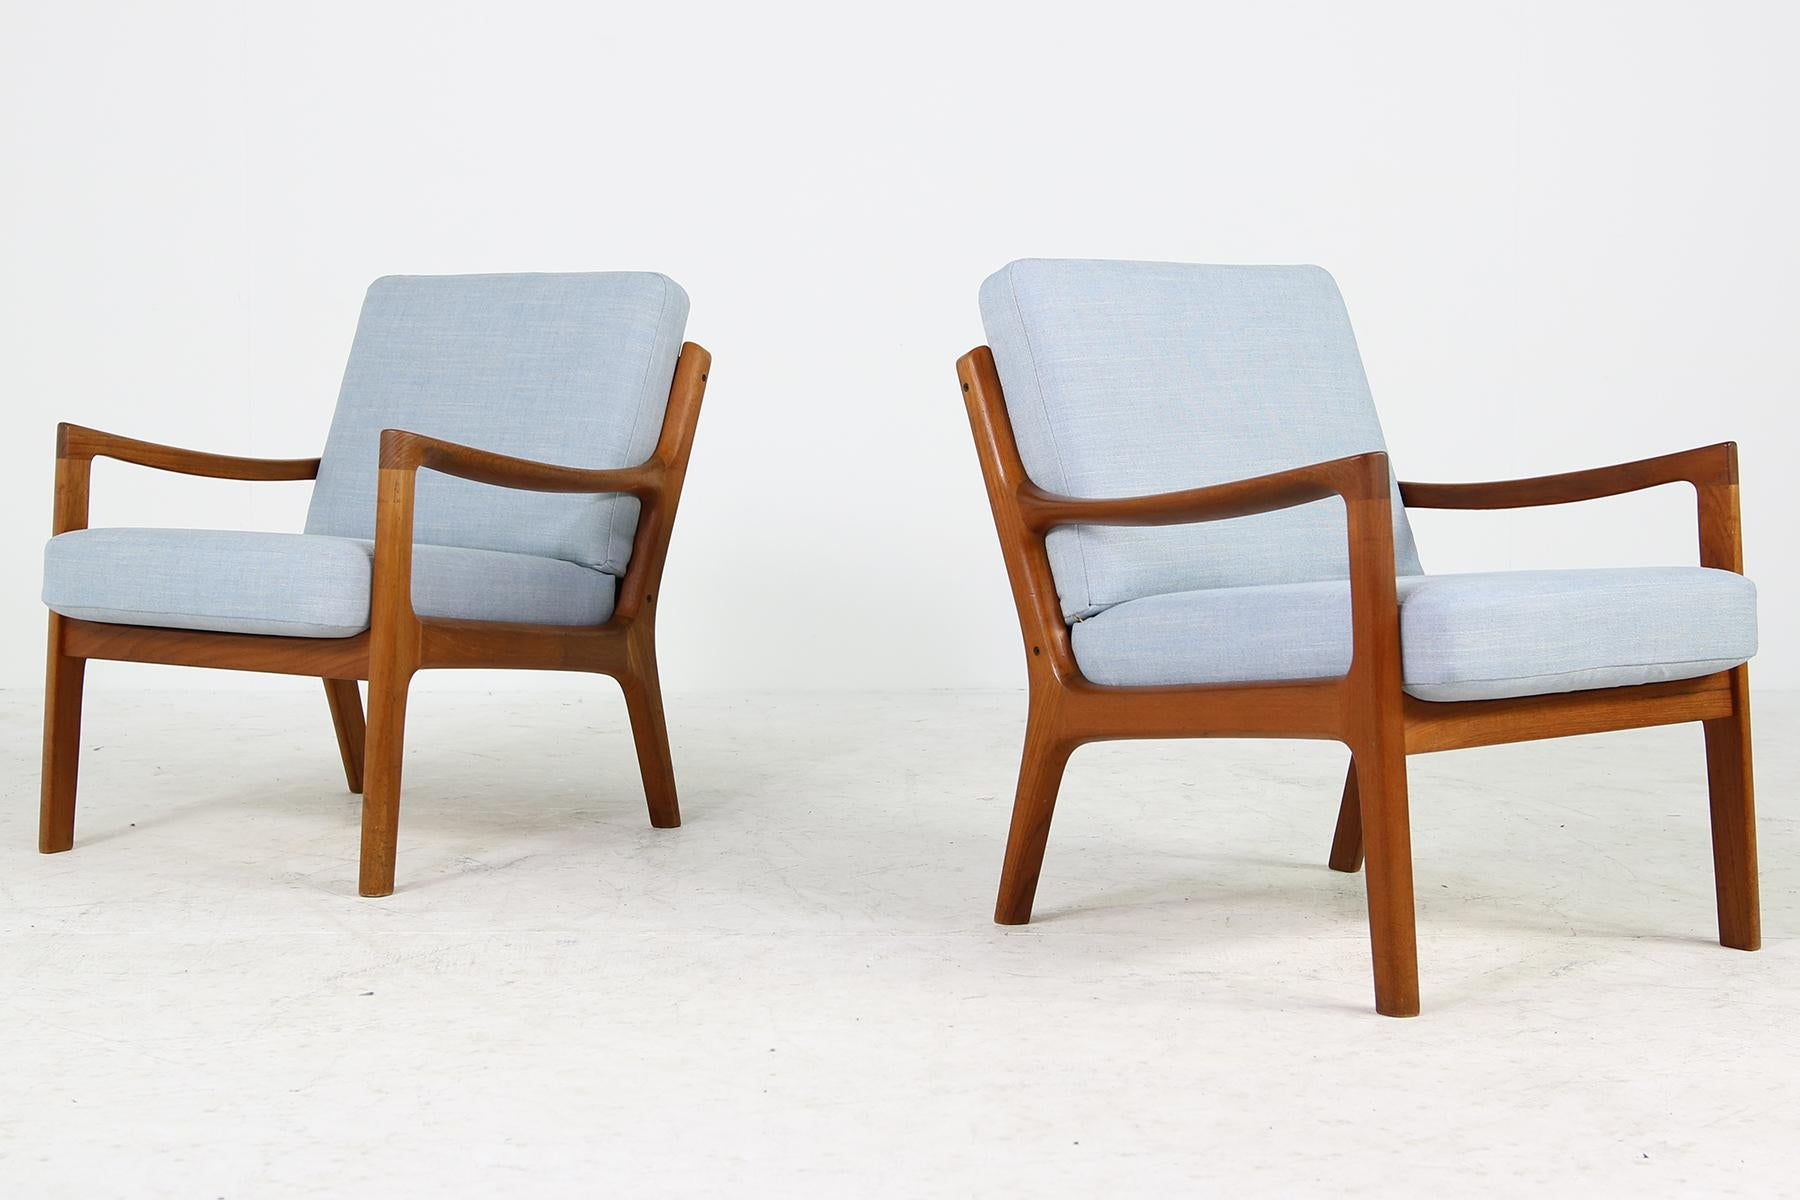 Ole Wanscher Sessel Pair Of Danish Modern 1960s Teak Lounge Easy Chairs By Ole Wanscher Denmark